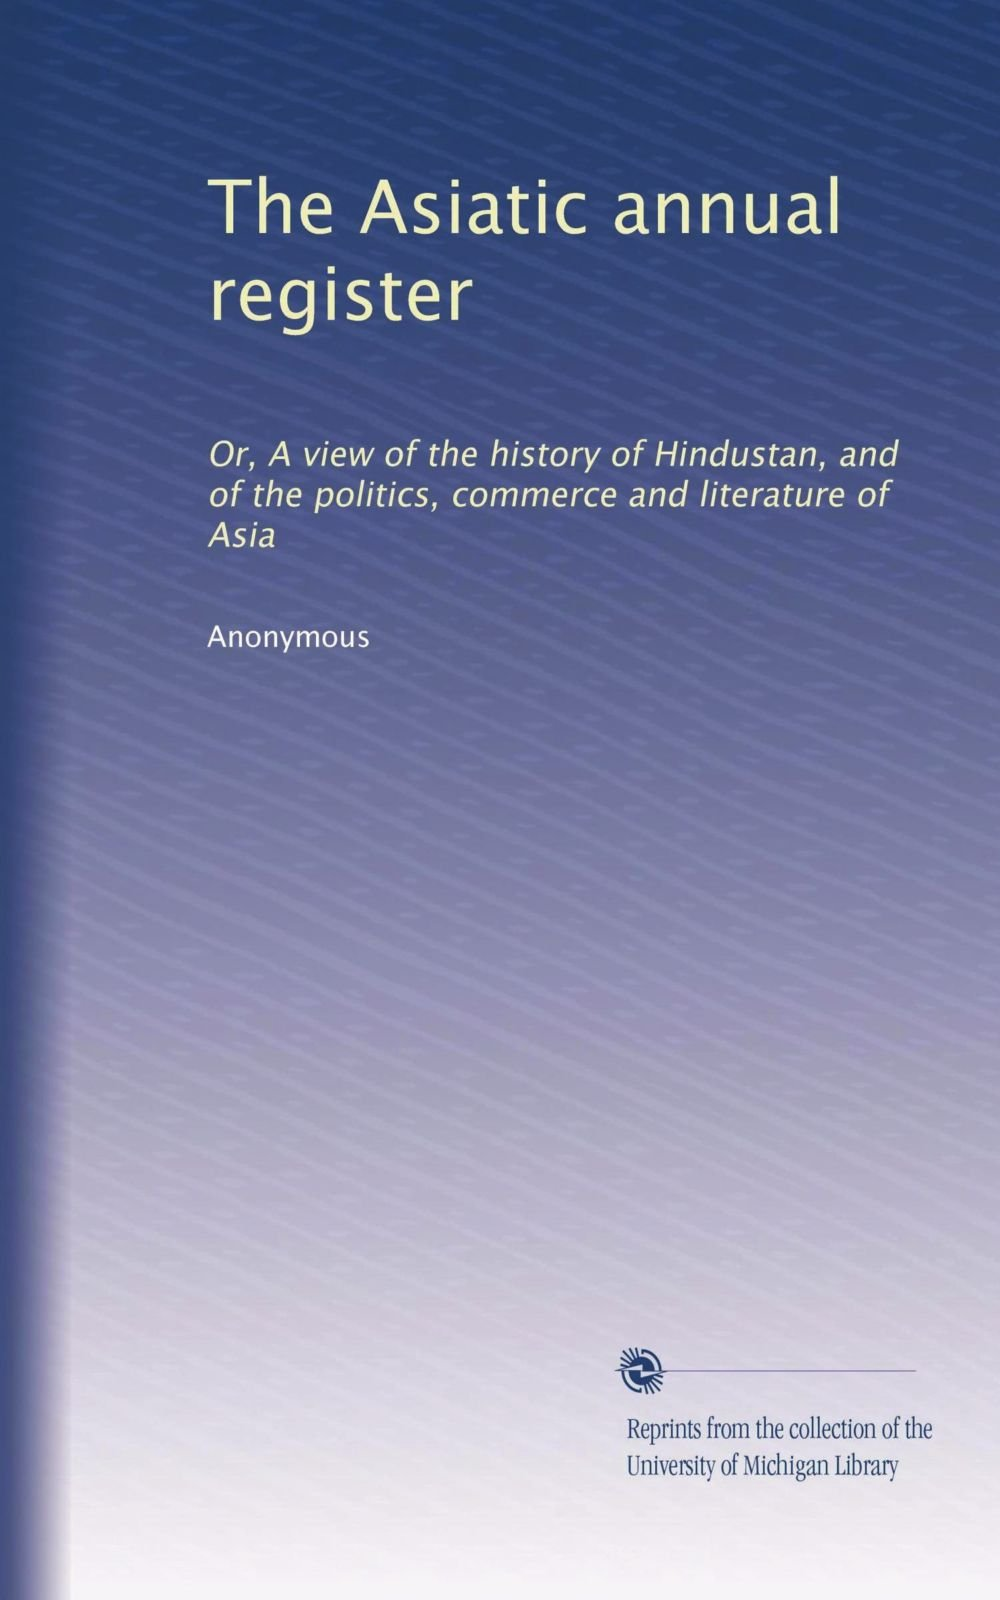 Download The Asiatic annual register: Or, A view of the history of Hindustan, and of the politics, commerce and literature of Asia (Volume 2) pdf epub